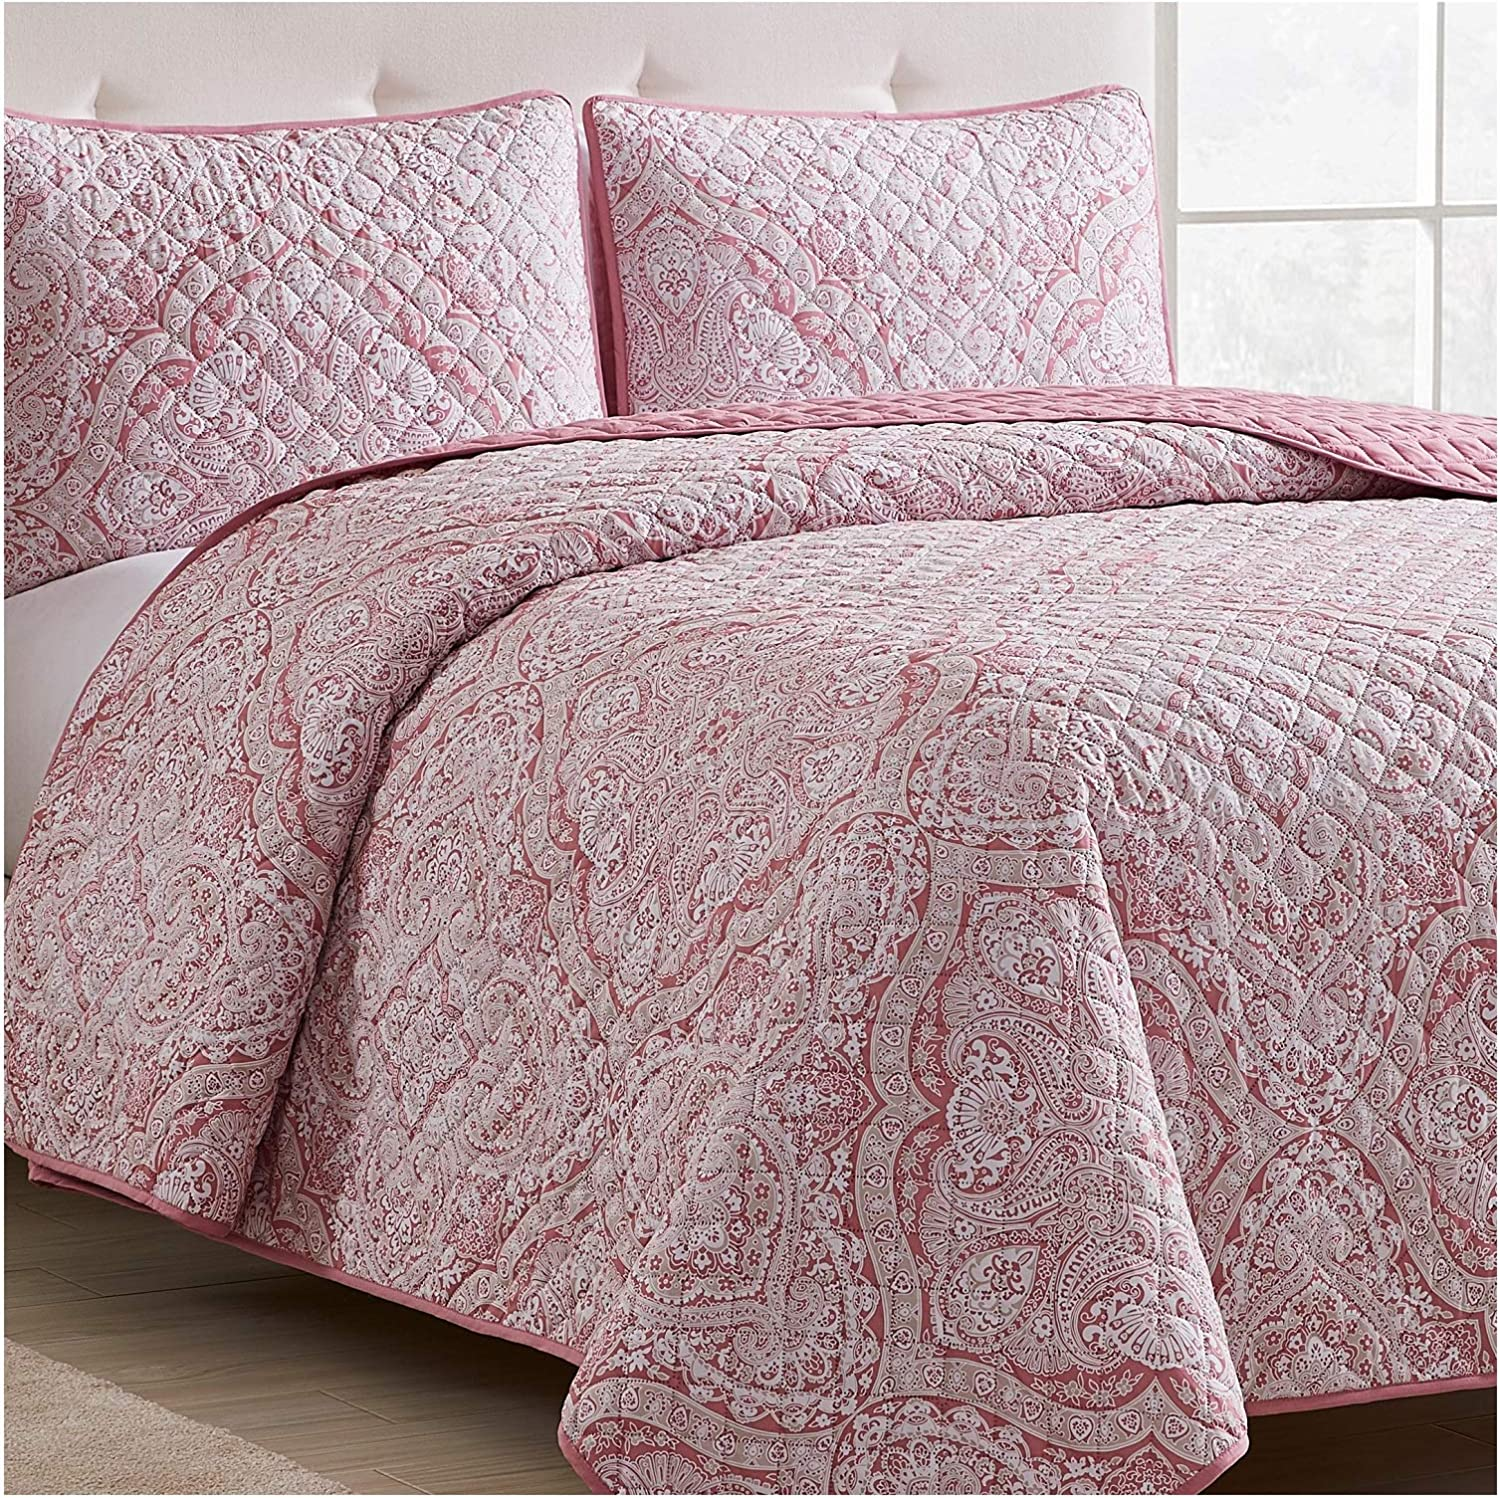 Mellanni Bedspread Coverlet Set - Comforter Bedding Cover - Oversized 2-Piece Quilt Set (Twin/TwinXL, Medallion Coral)